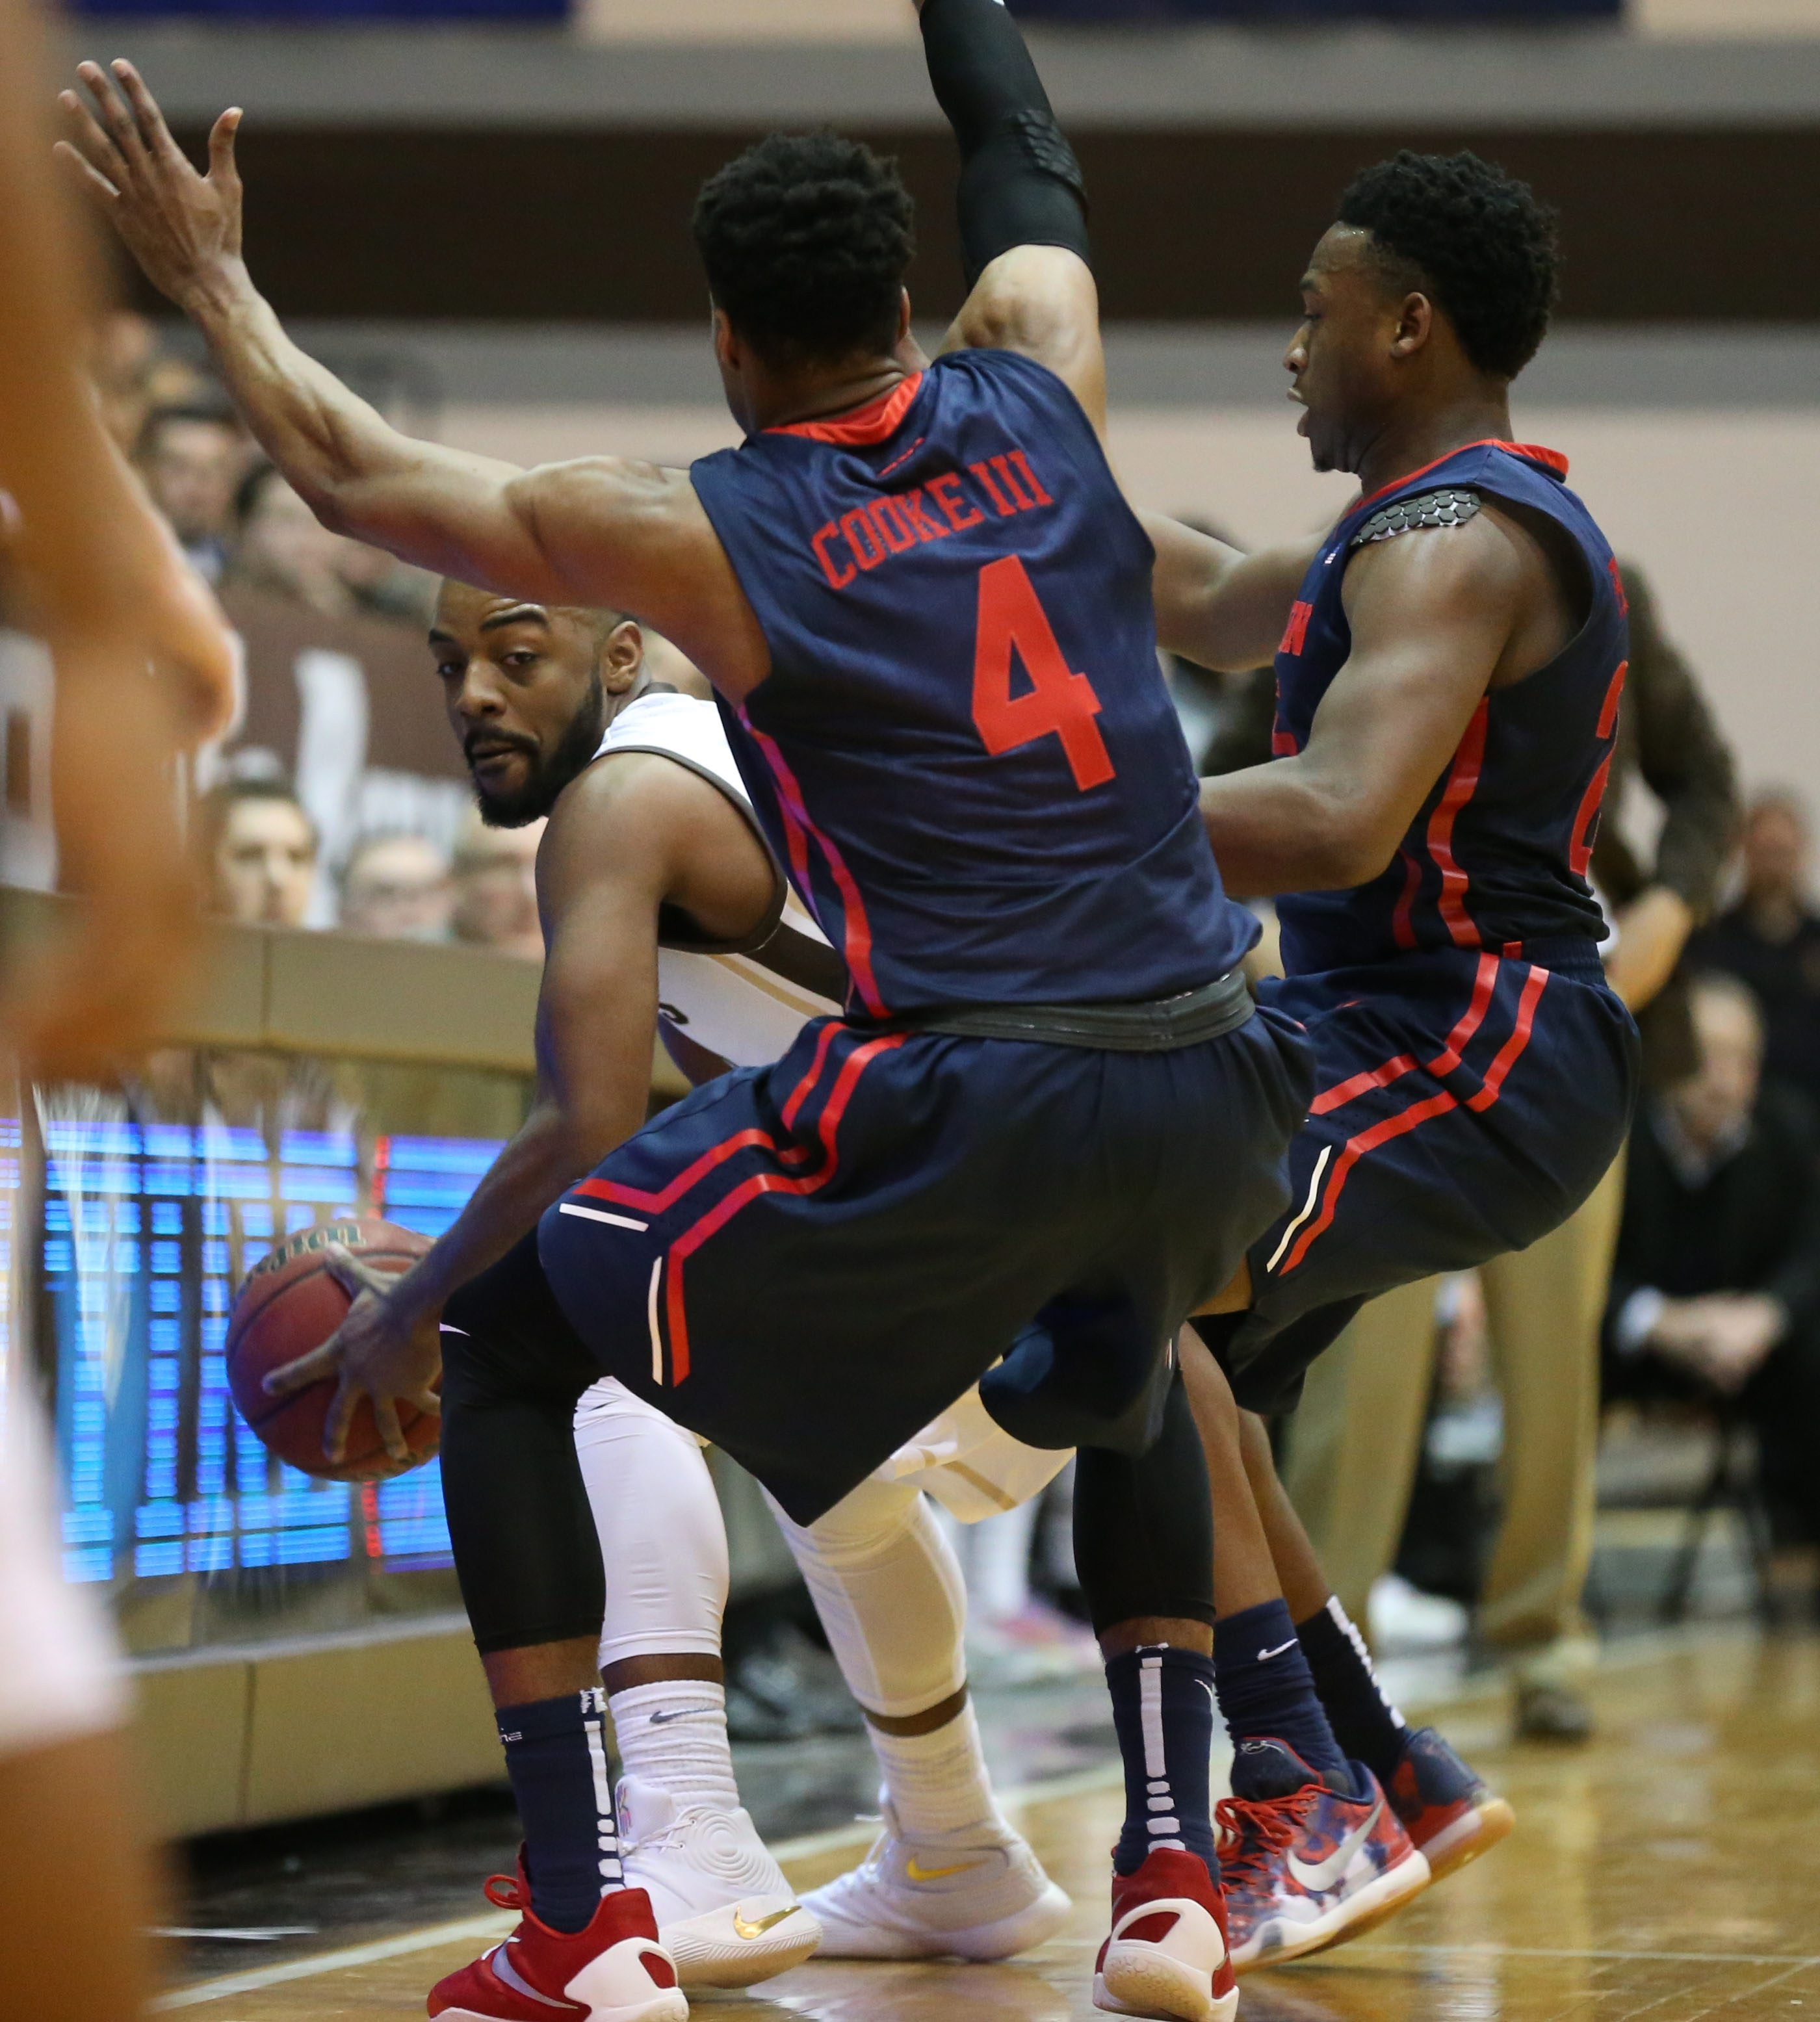 Guard Marcus Posley and St. Bonaventure will be looking for room to maneuver during Saturday's rematch with Dayton, the Atlantic 10's top defensive team.